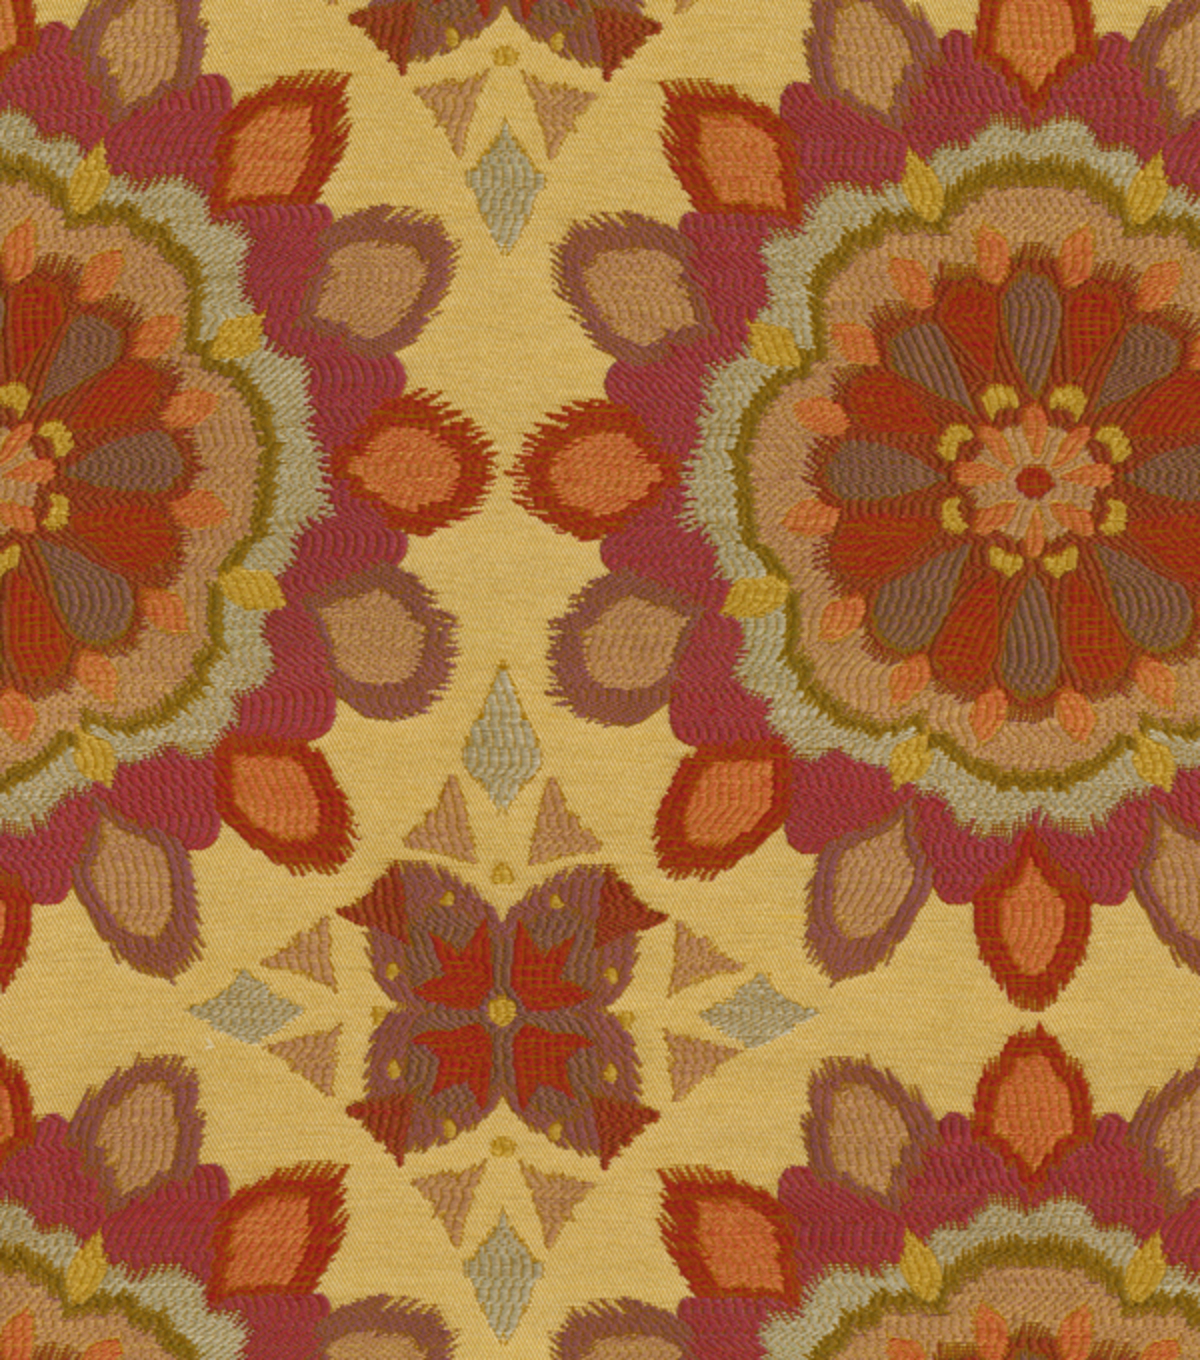 Home Decor 8\u0022x8\u0022 Fabric Swatch-Waverly Spellbound Fiesta